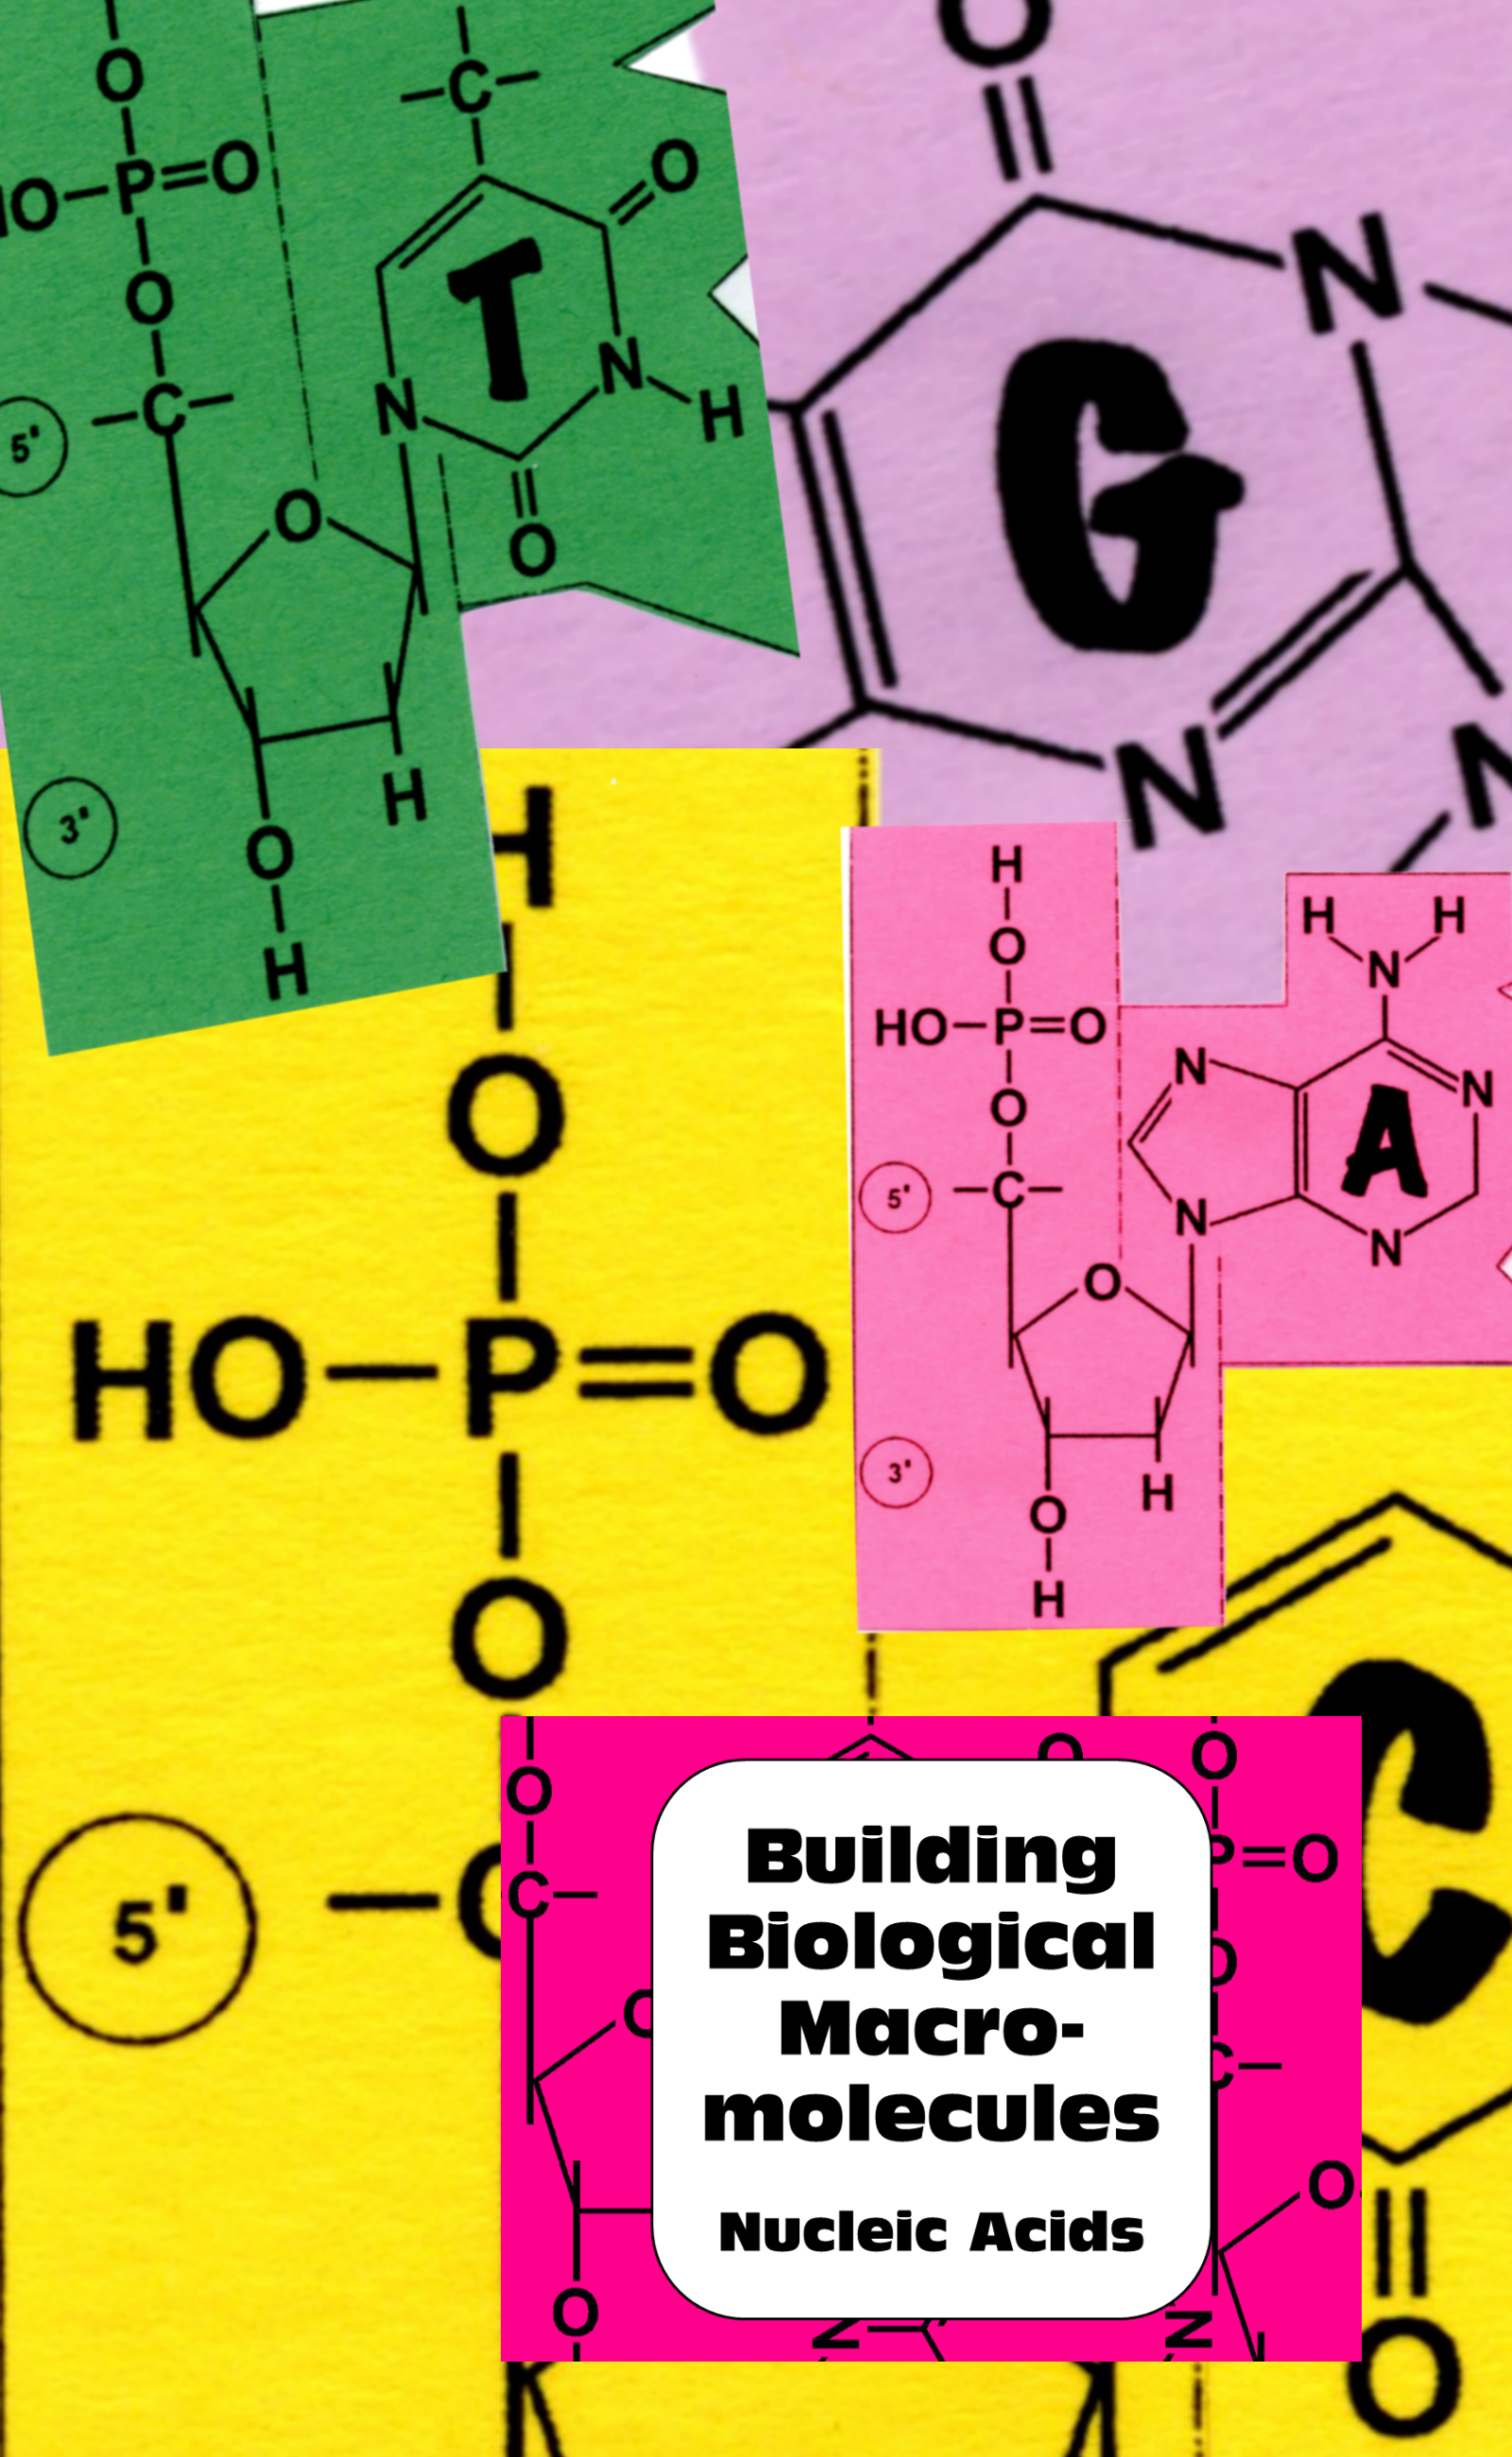 What idea did hardy and weinberg disprove - Dna Nucleic Acids Biochemistry Building Biological Macromolecules High School